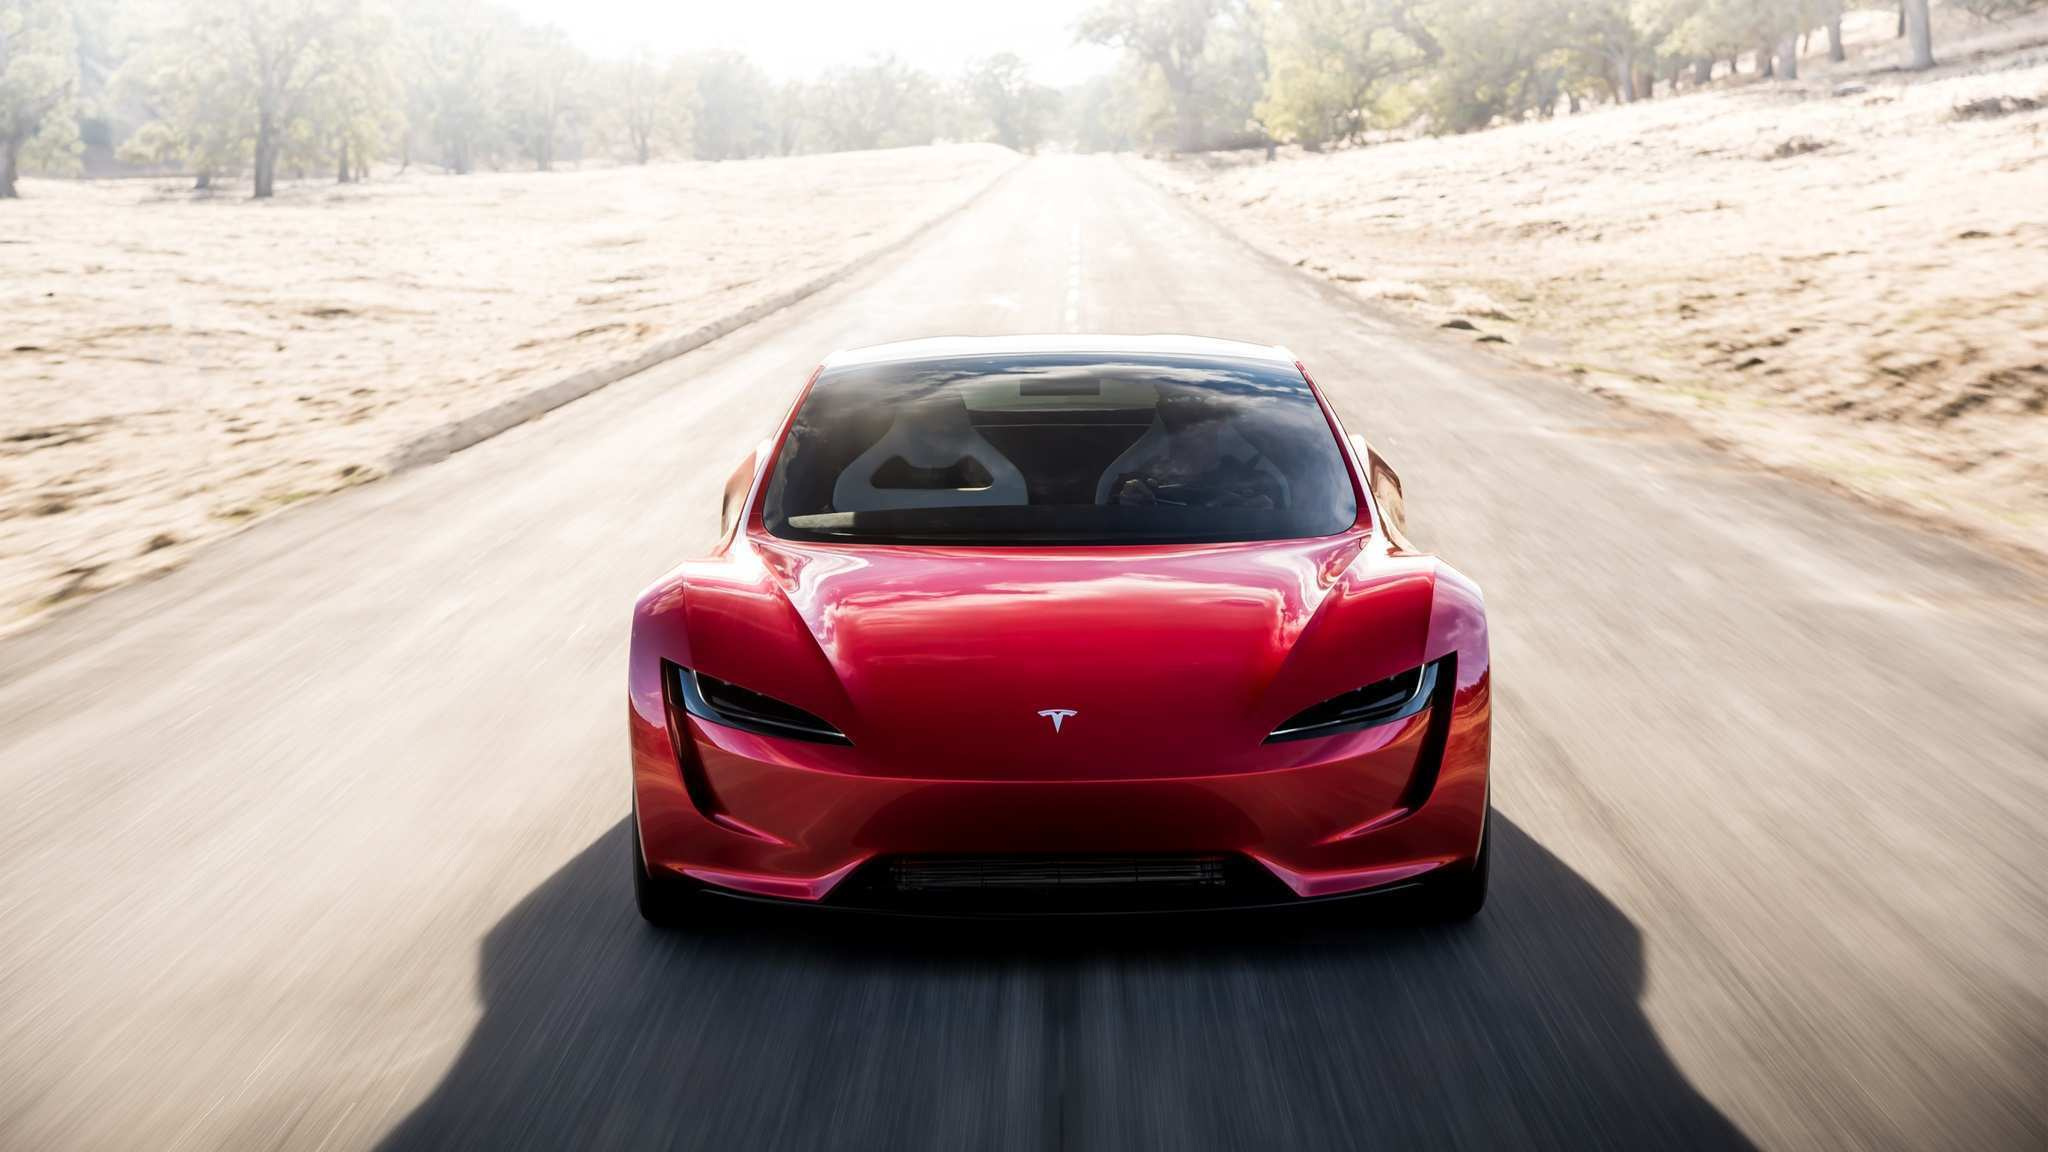 71 New 2020 Tesla Roadster Charge Time Configurations for 2020 Tesla Roadster Charge Time